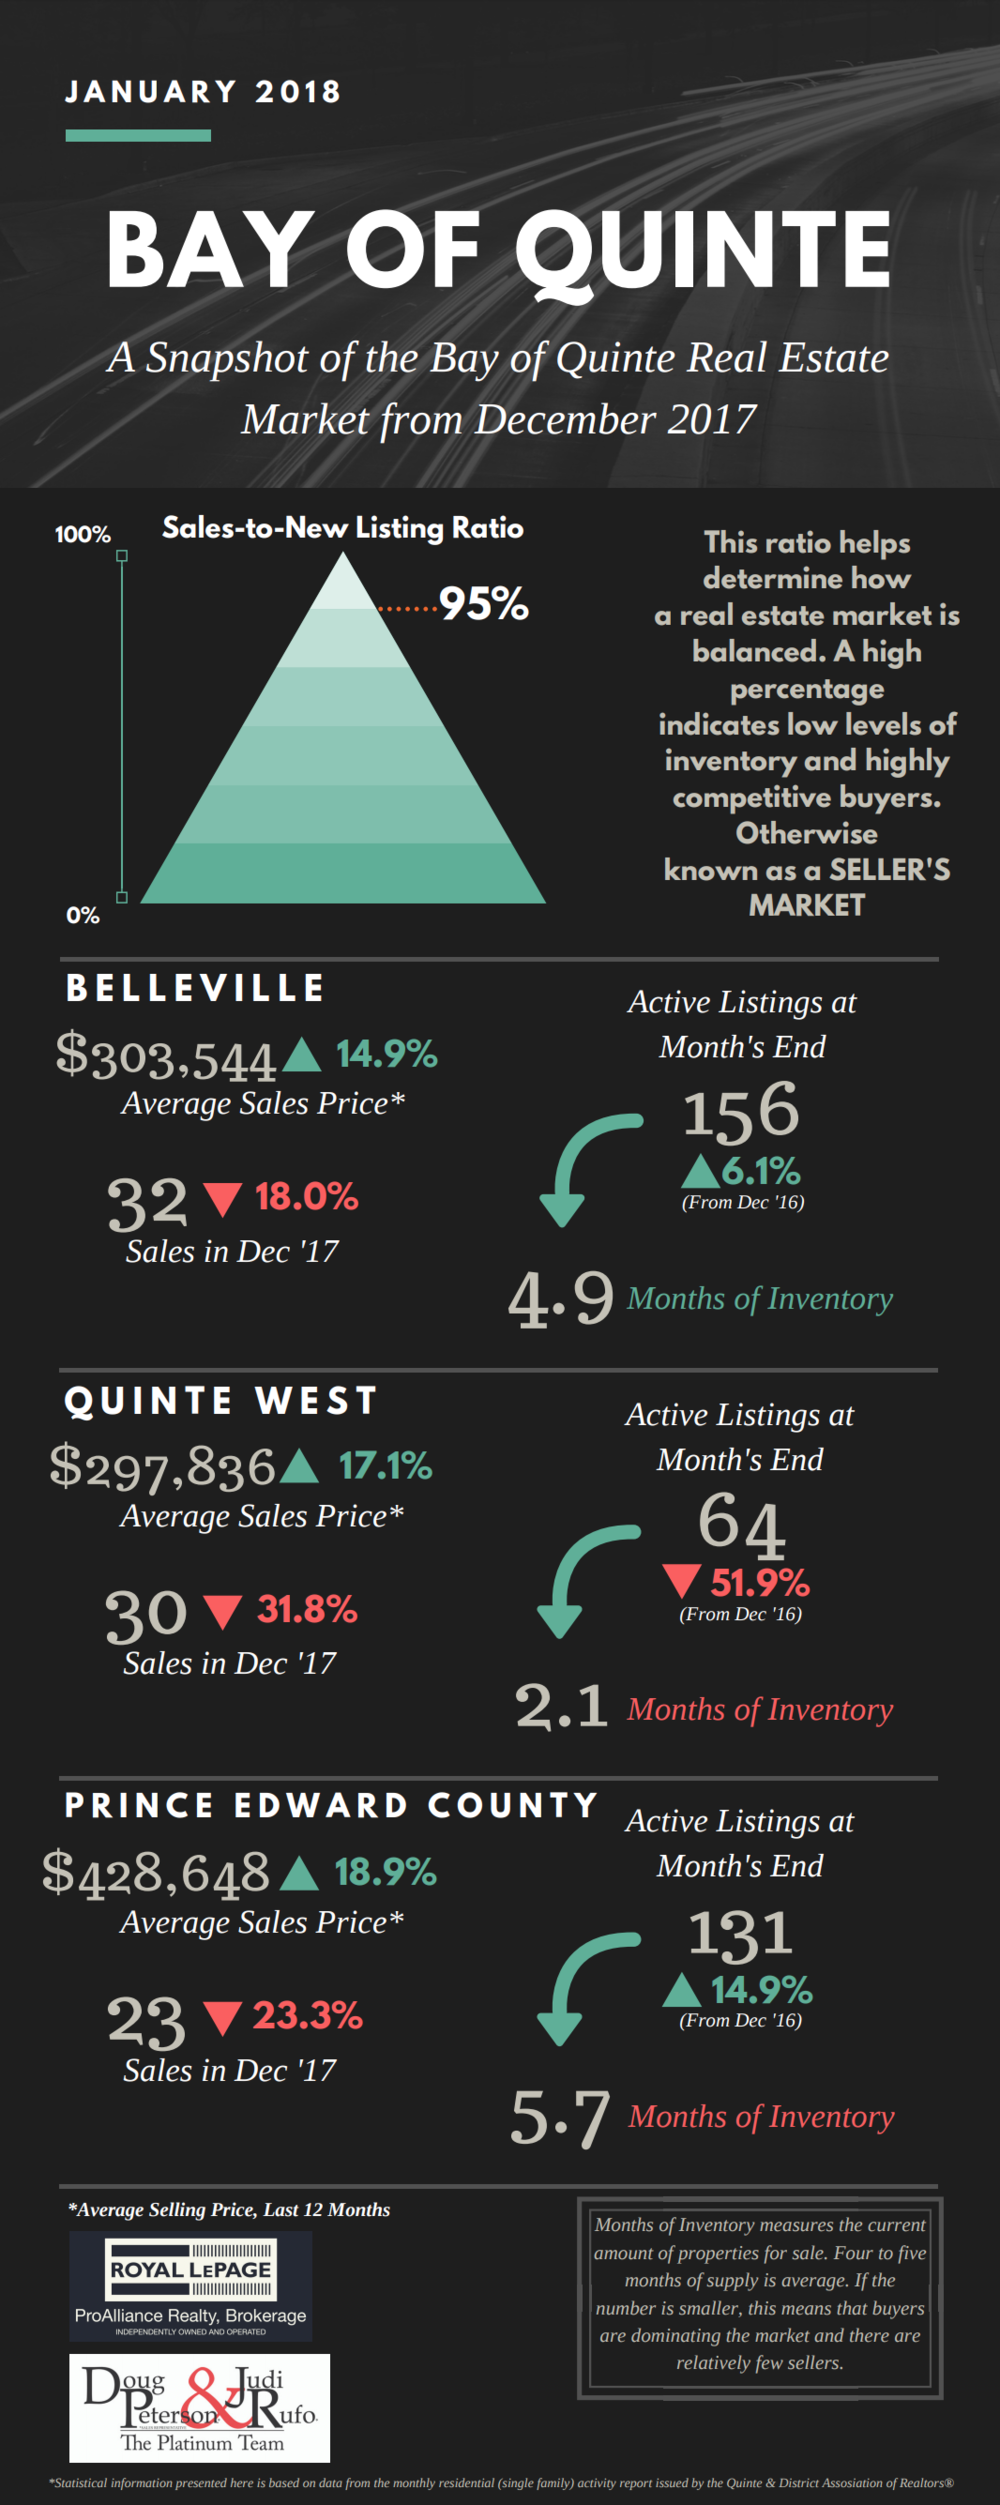 Real Estate Market Update for January 2018, based on the residential (single family) activity report from QDAR. (Click to view the full infographic)